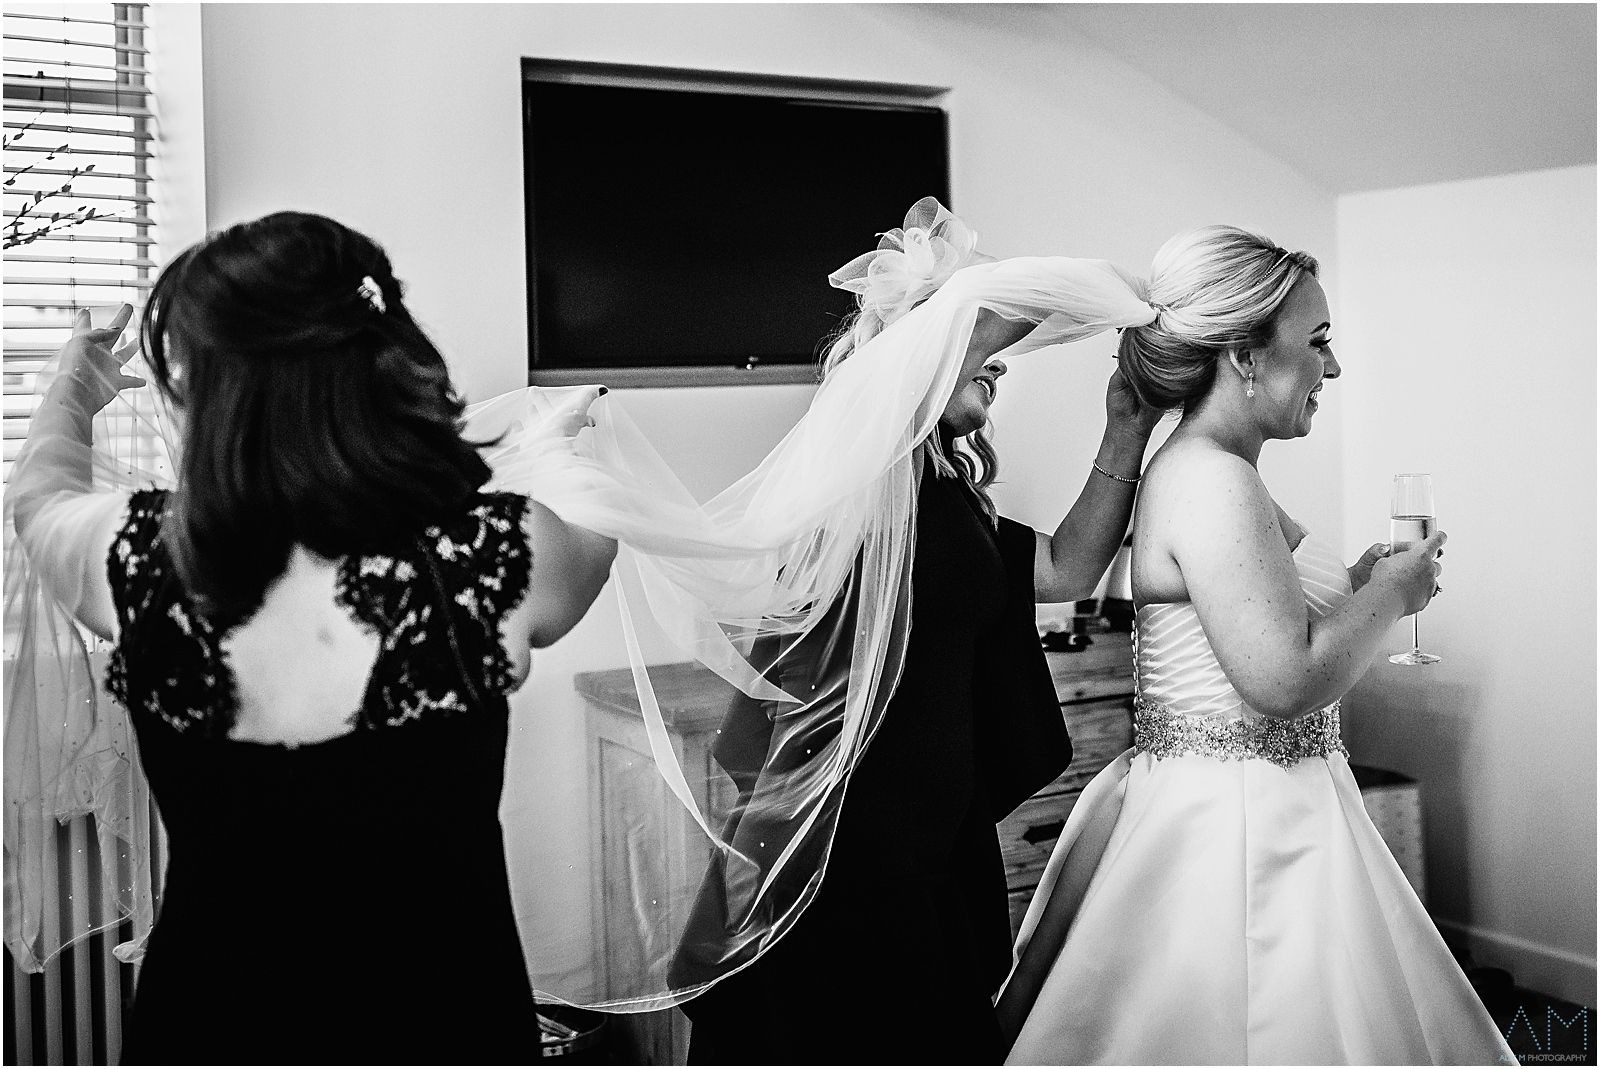 Bridesmaids helping the bride with her veil